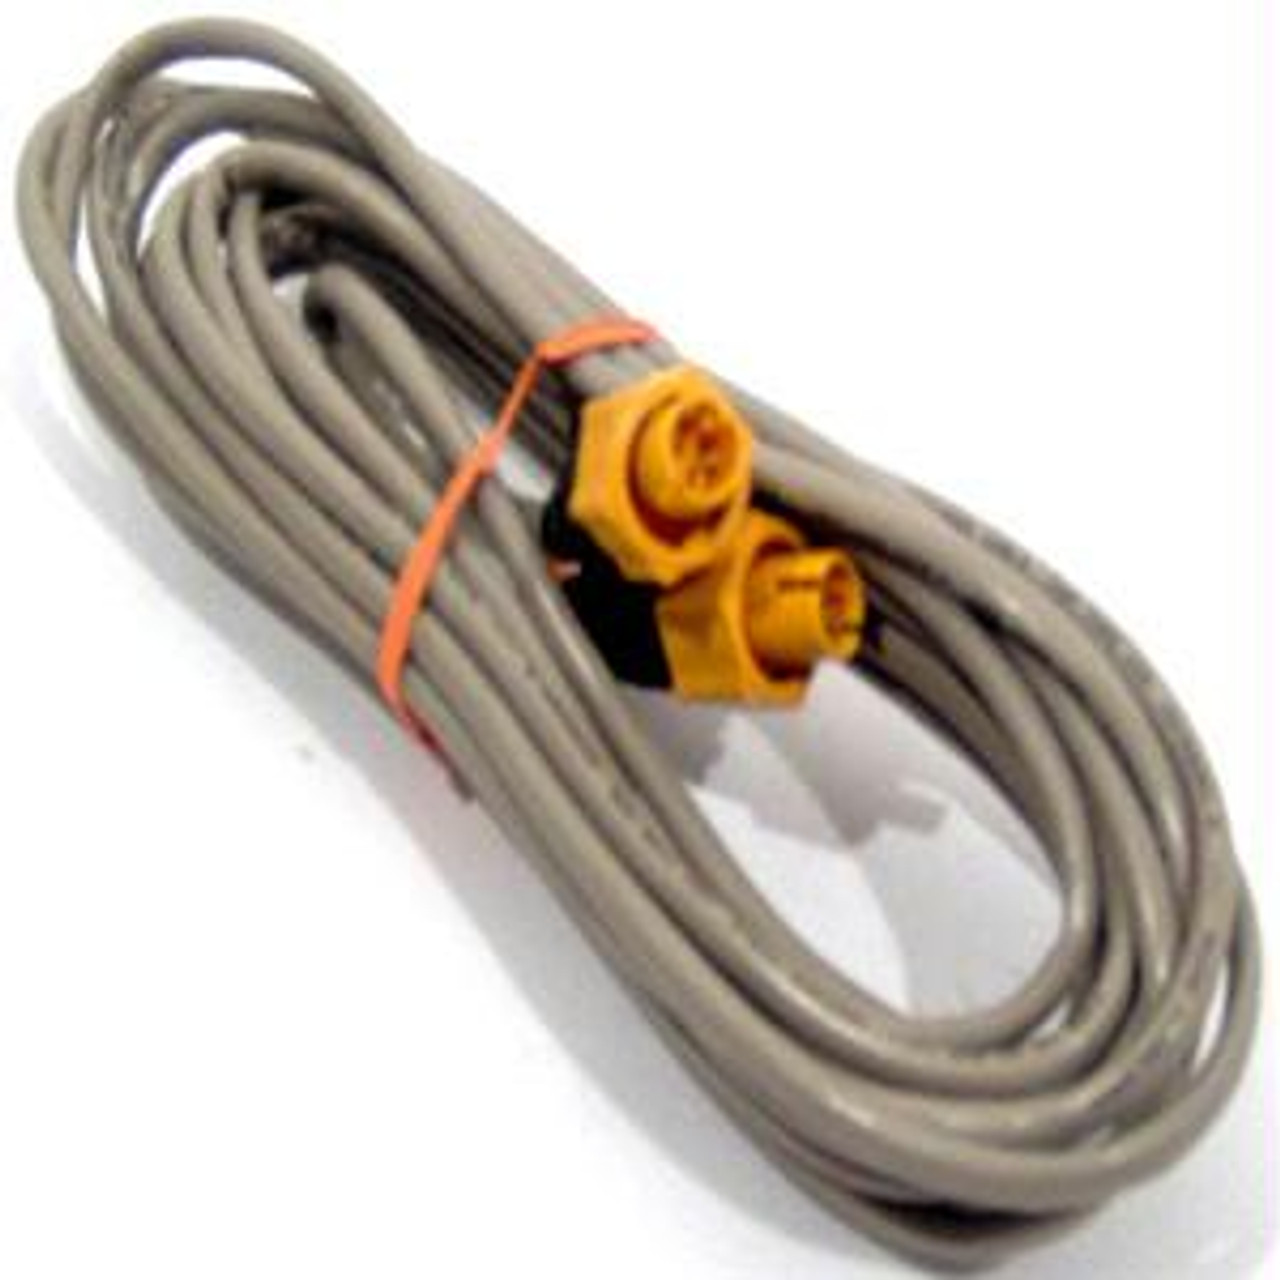 Lowrance Ethext25yl 25 Ethernet Extension Cable